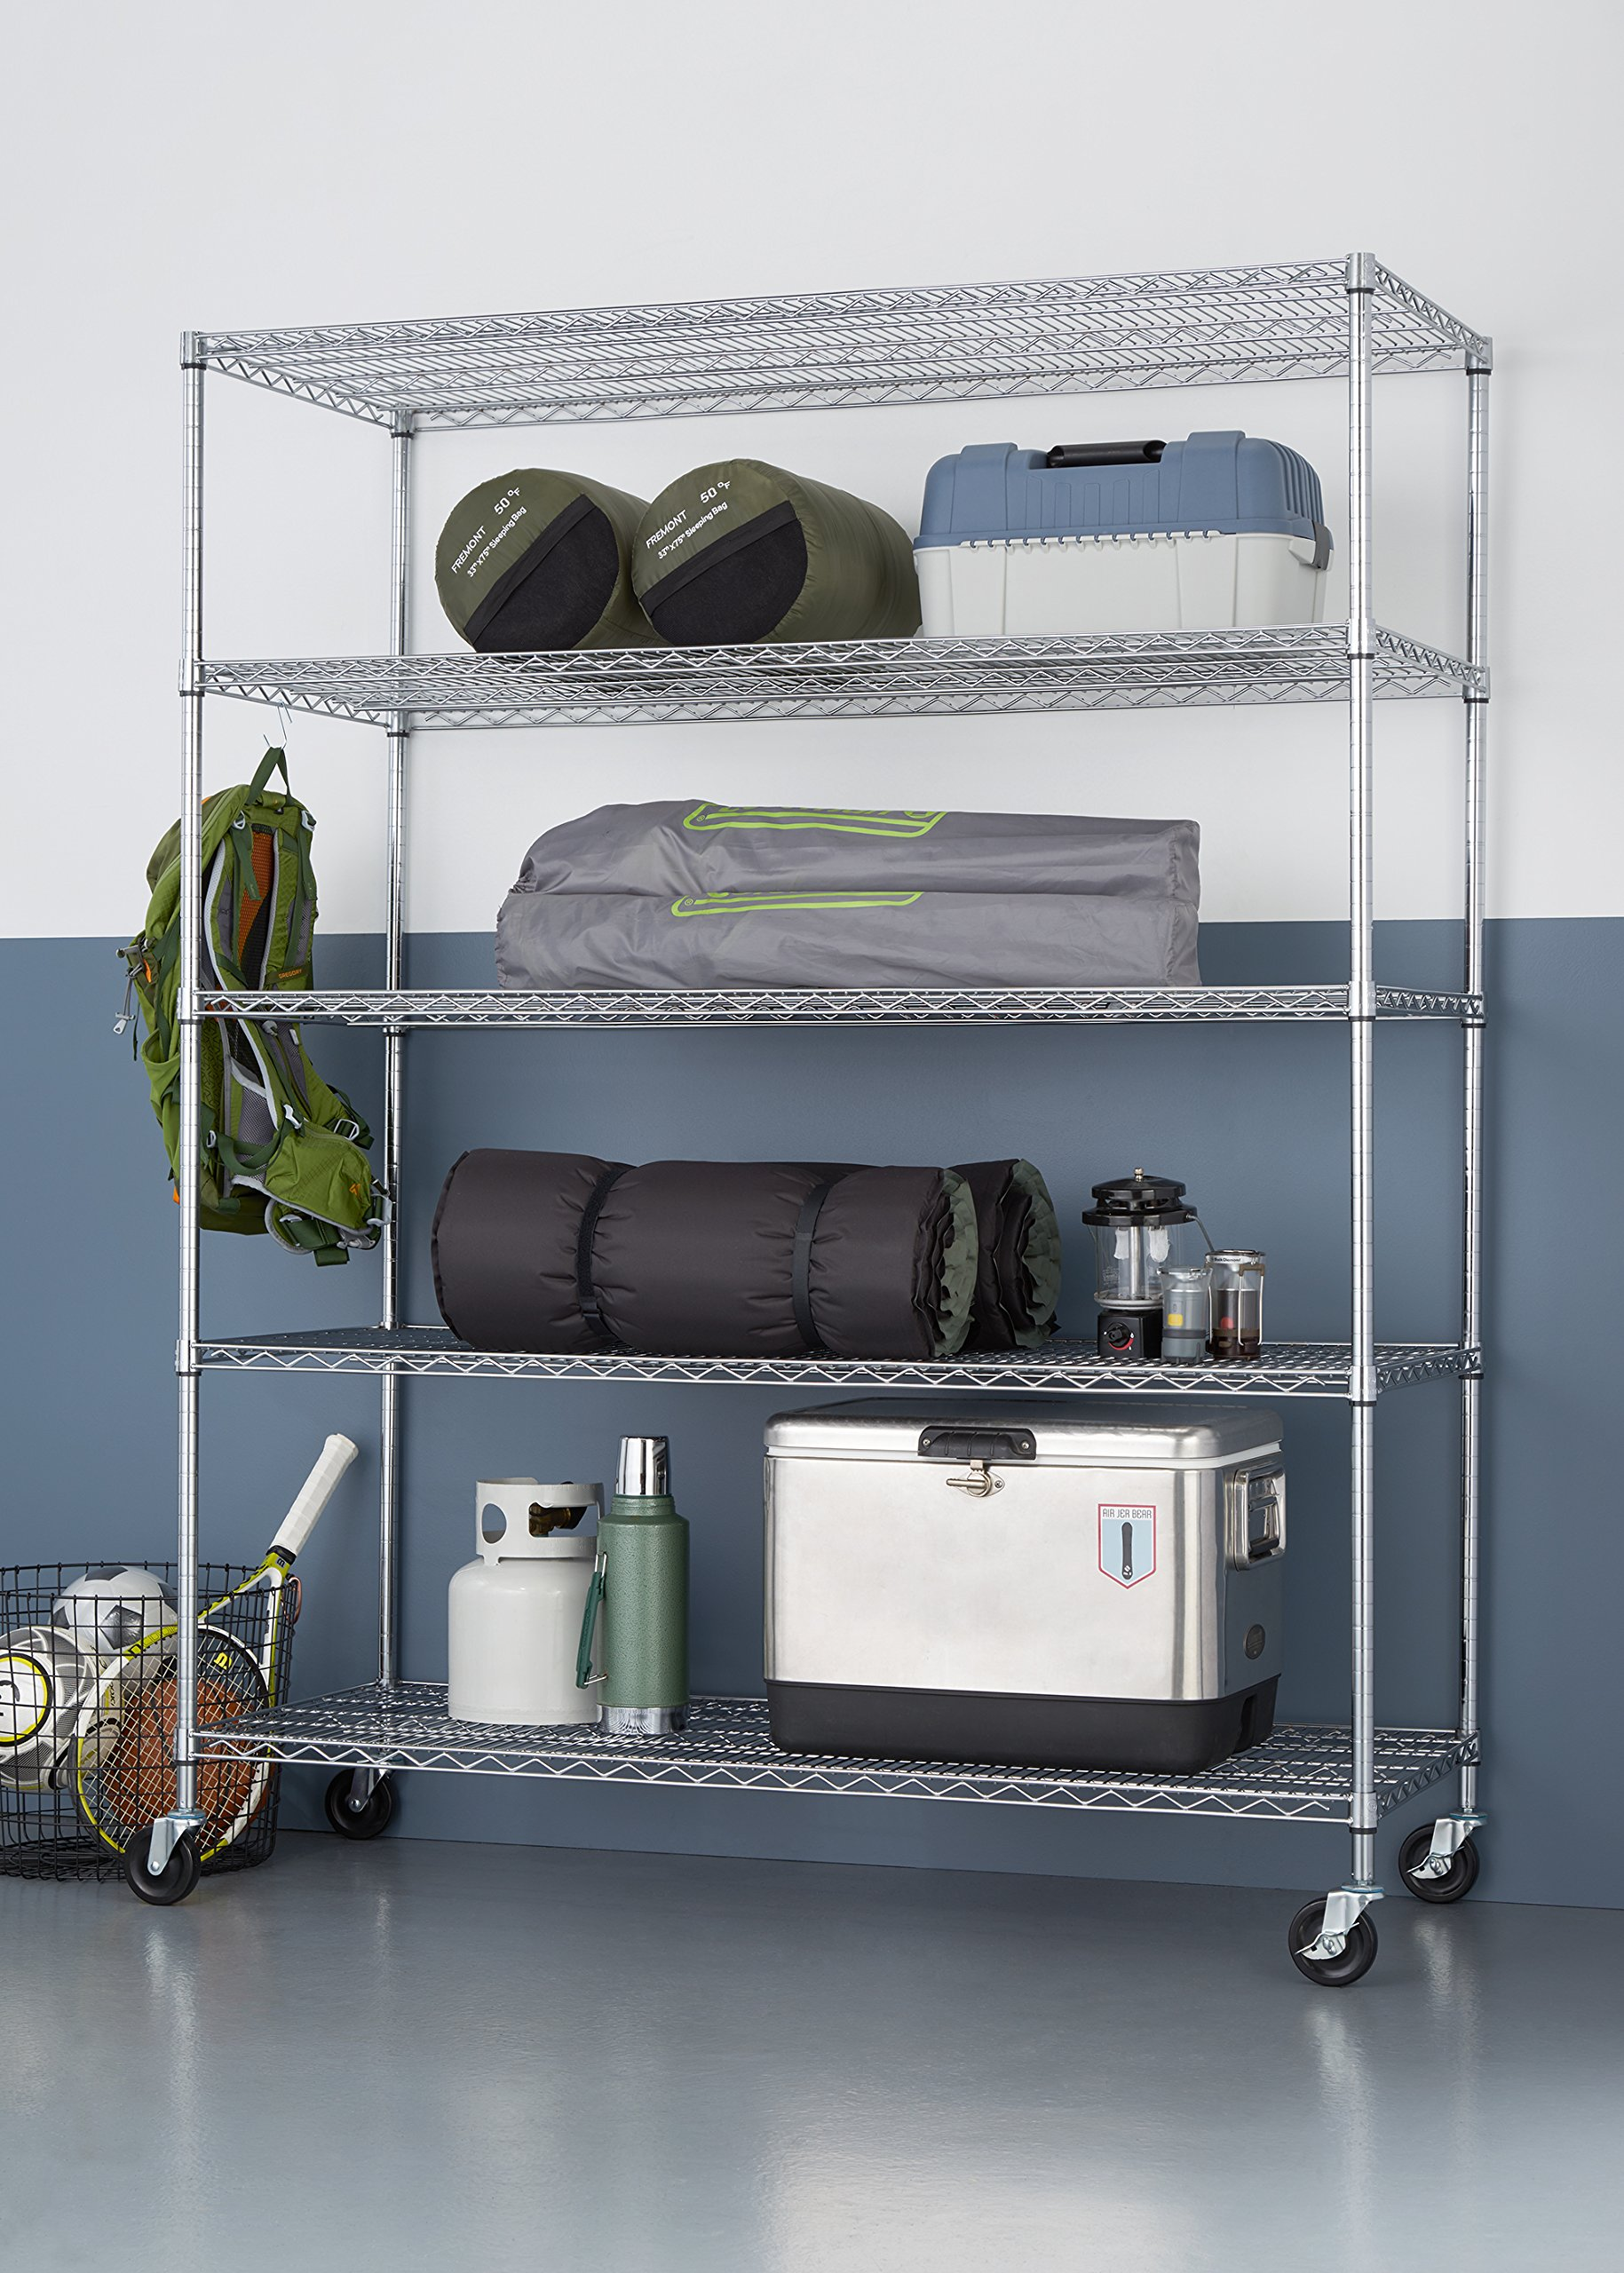 TRINITY 5-Tier NSF Heavy Duty X-Large Wire Shelving Rack with Wheels, 60 by 24 by 72-Inch, Chrome by Trinity (Image #3)